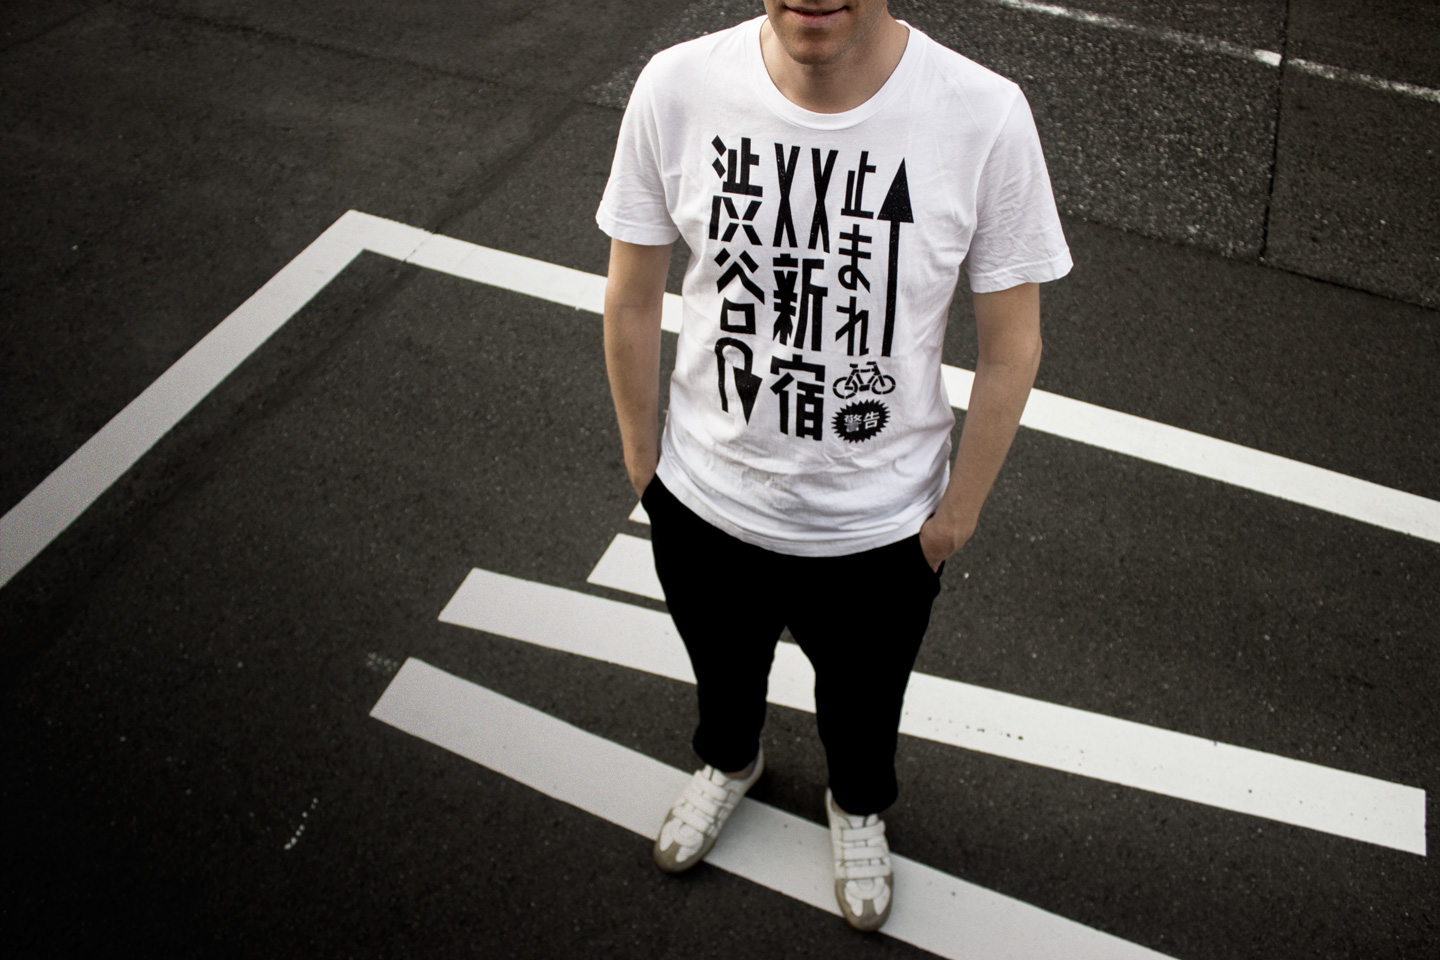 Tokyo Signs™ - Products inspired by the streets of Tokyo - Tokyo Roadmarks T-shirt